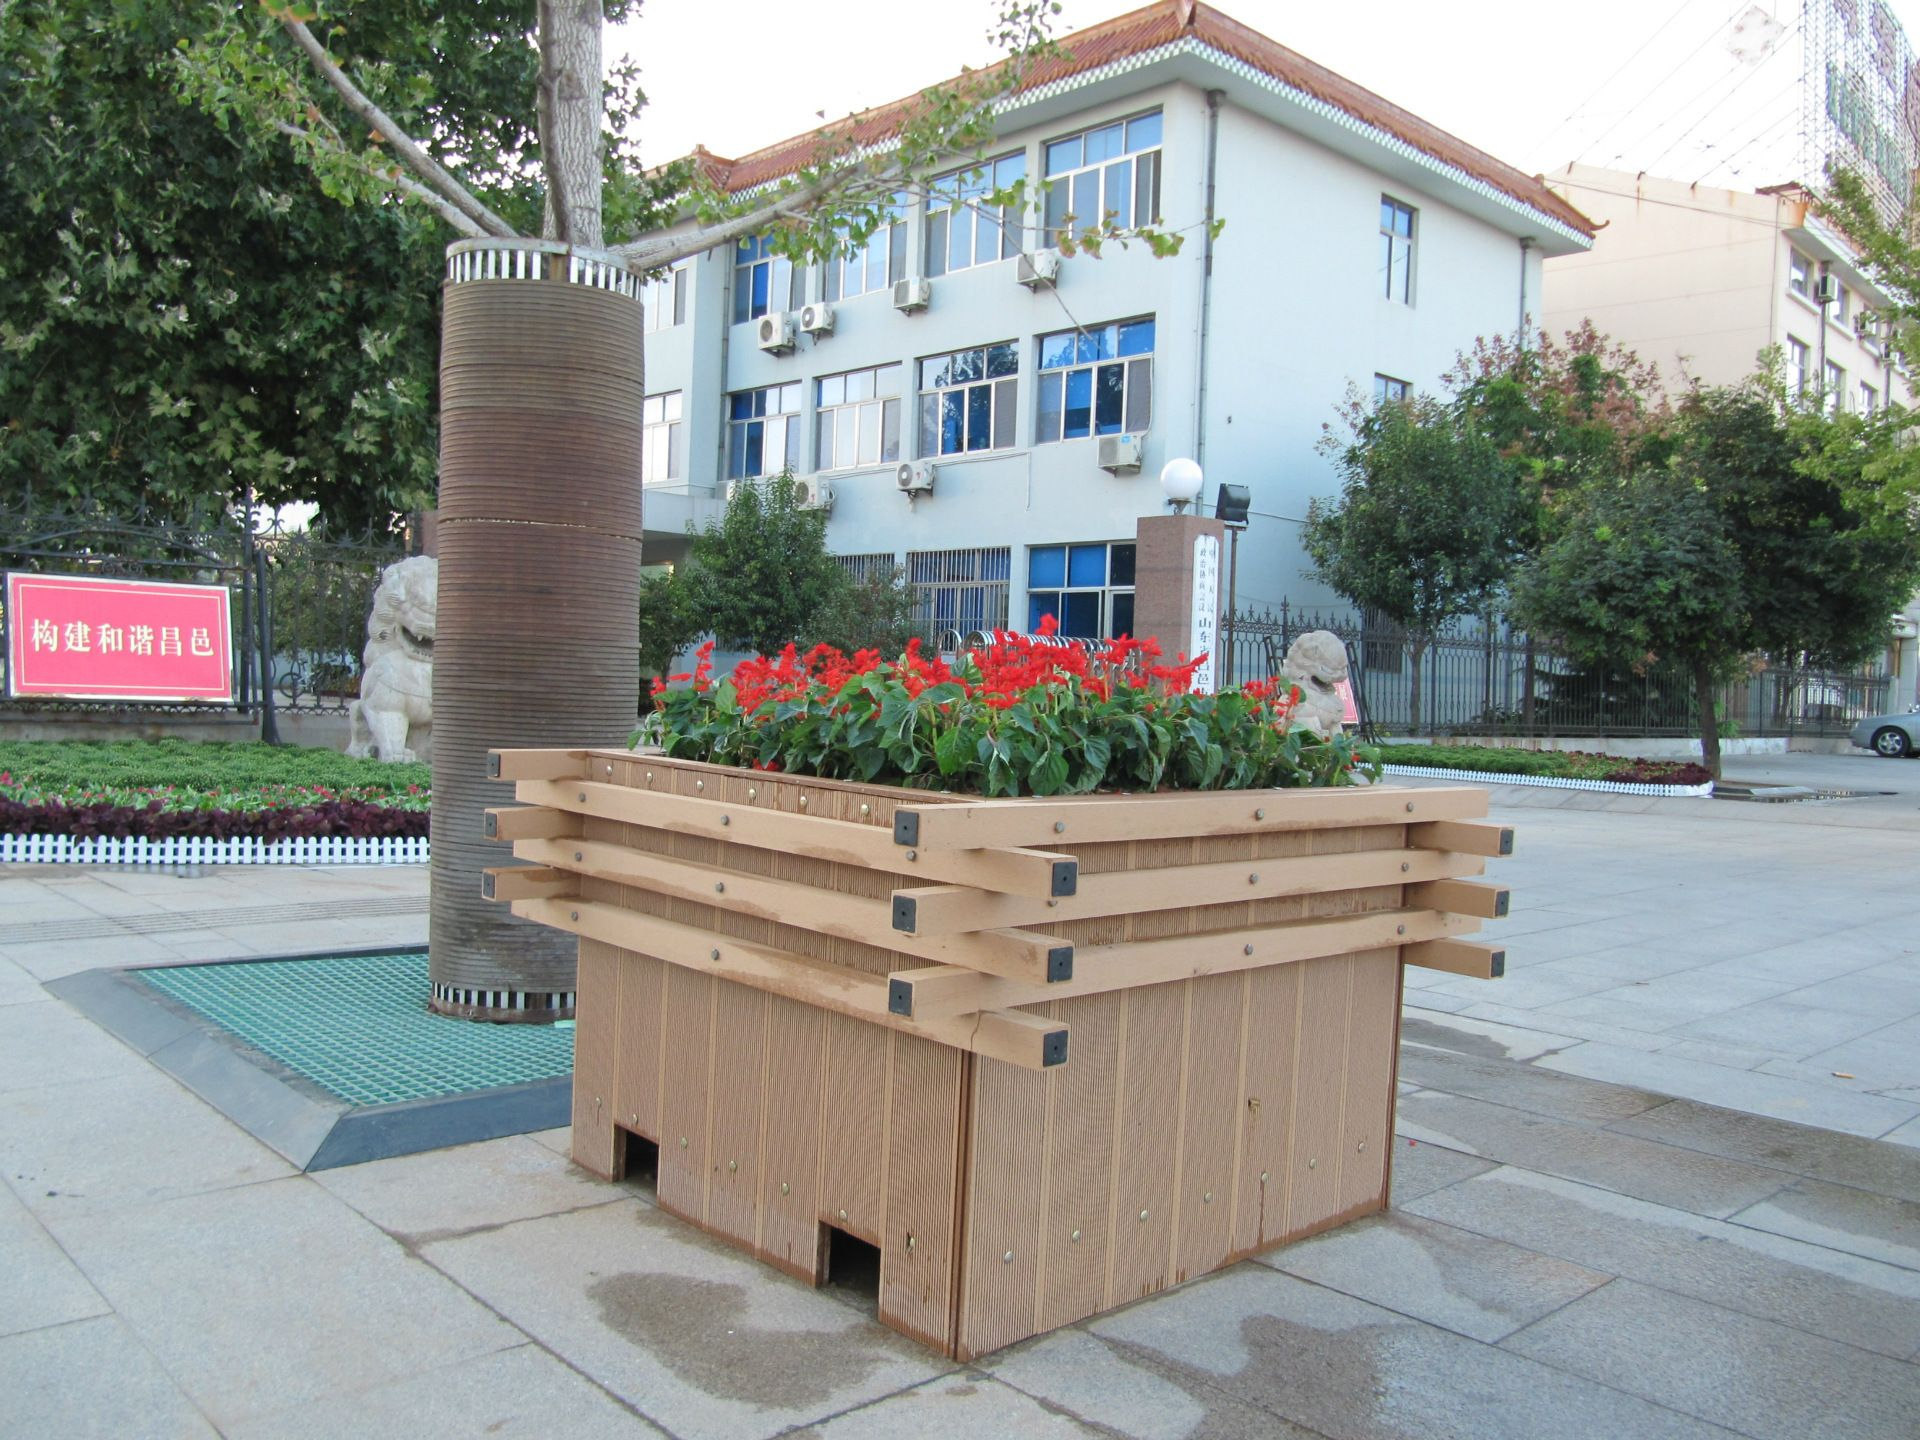 composite wood flower boxes, of outdoor wood plastic composite flower boxes, outdoor wpc flower box,Guatemala,Puerto Barrios customized wooden flower boxes #woodenflowerboxes